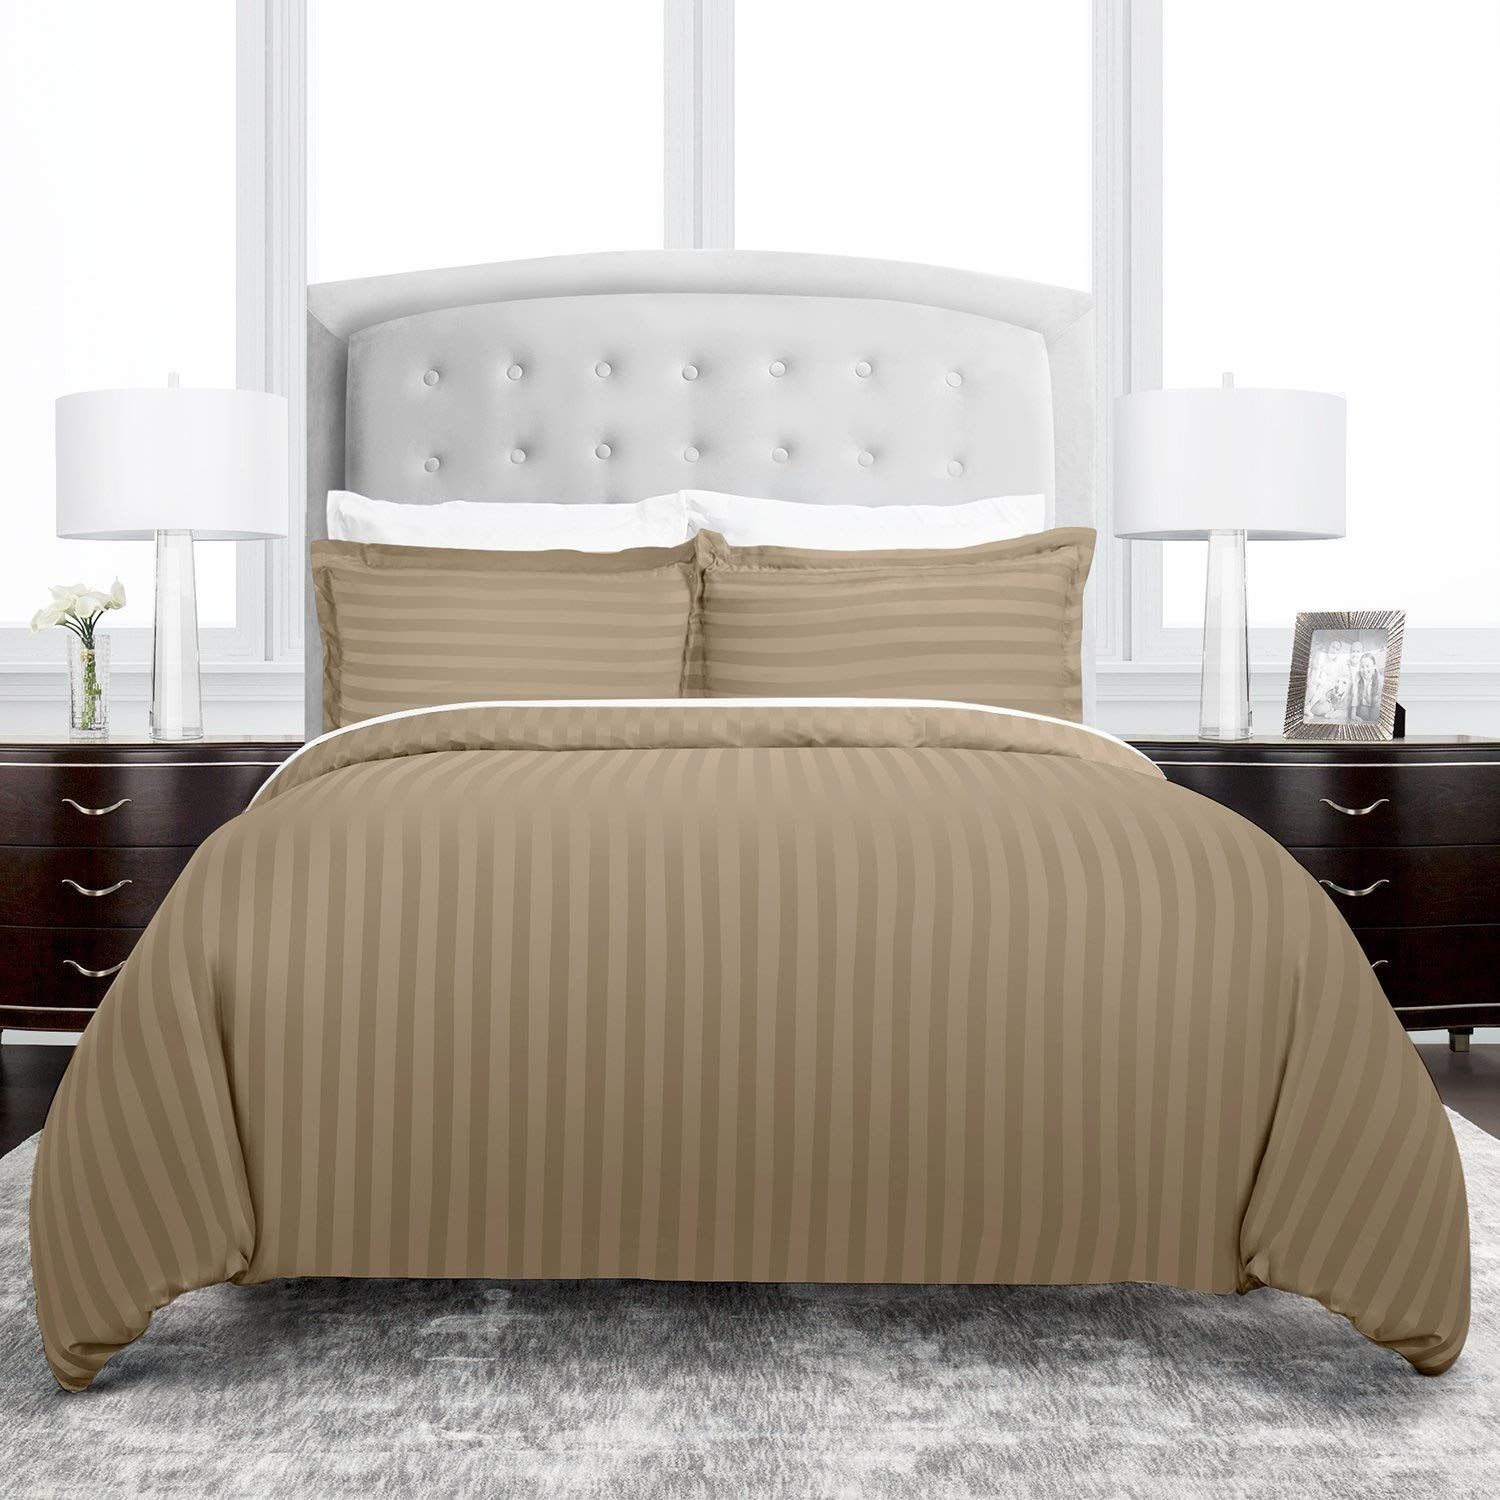 Beckham Hotel Collection 2200 Series Dobby Striped Duvet Cover Set - Luxury Soft Brushed Microfiber with Matching Shams - Hypoallergenic -Full/Queen - Taupe